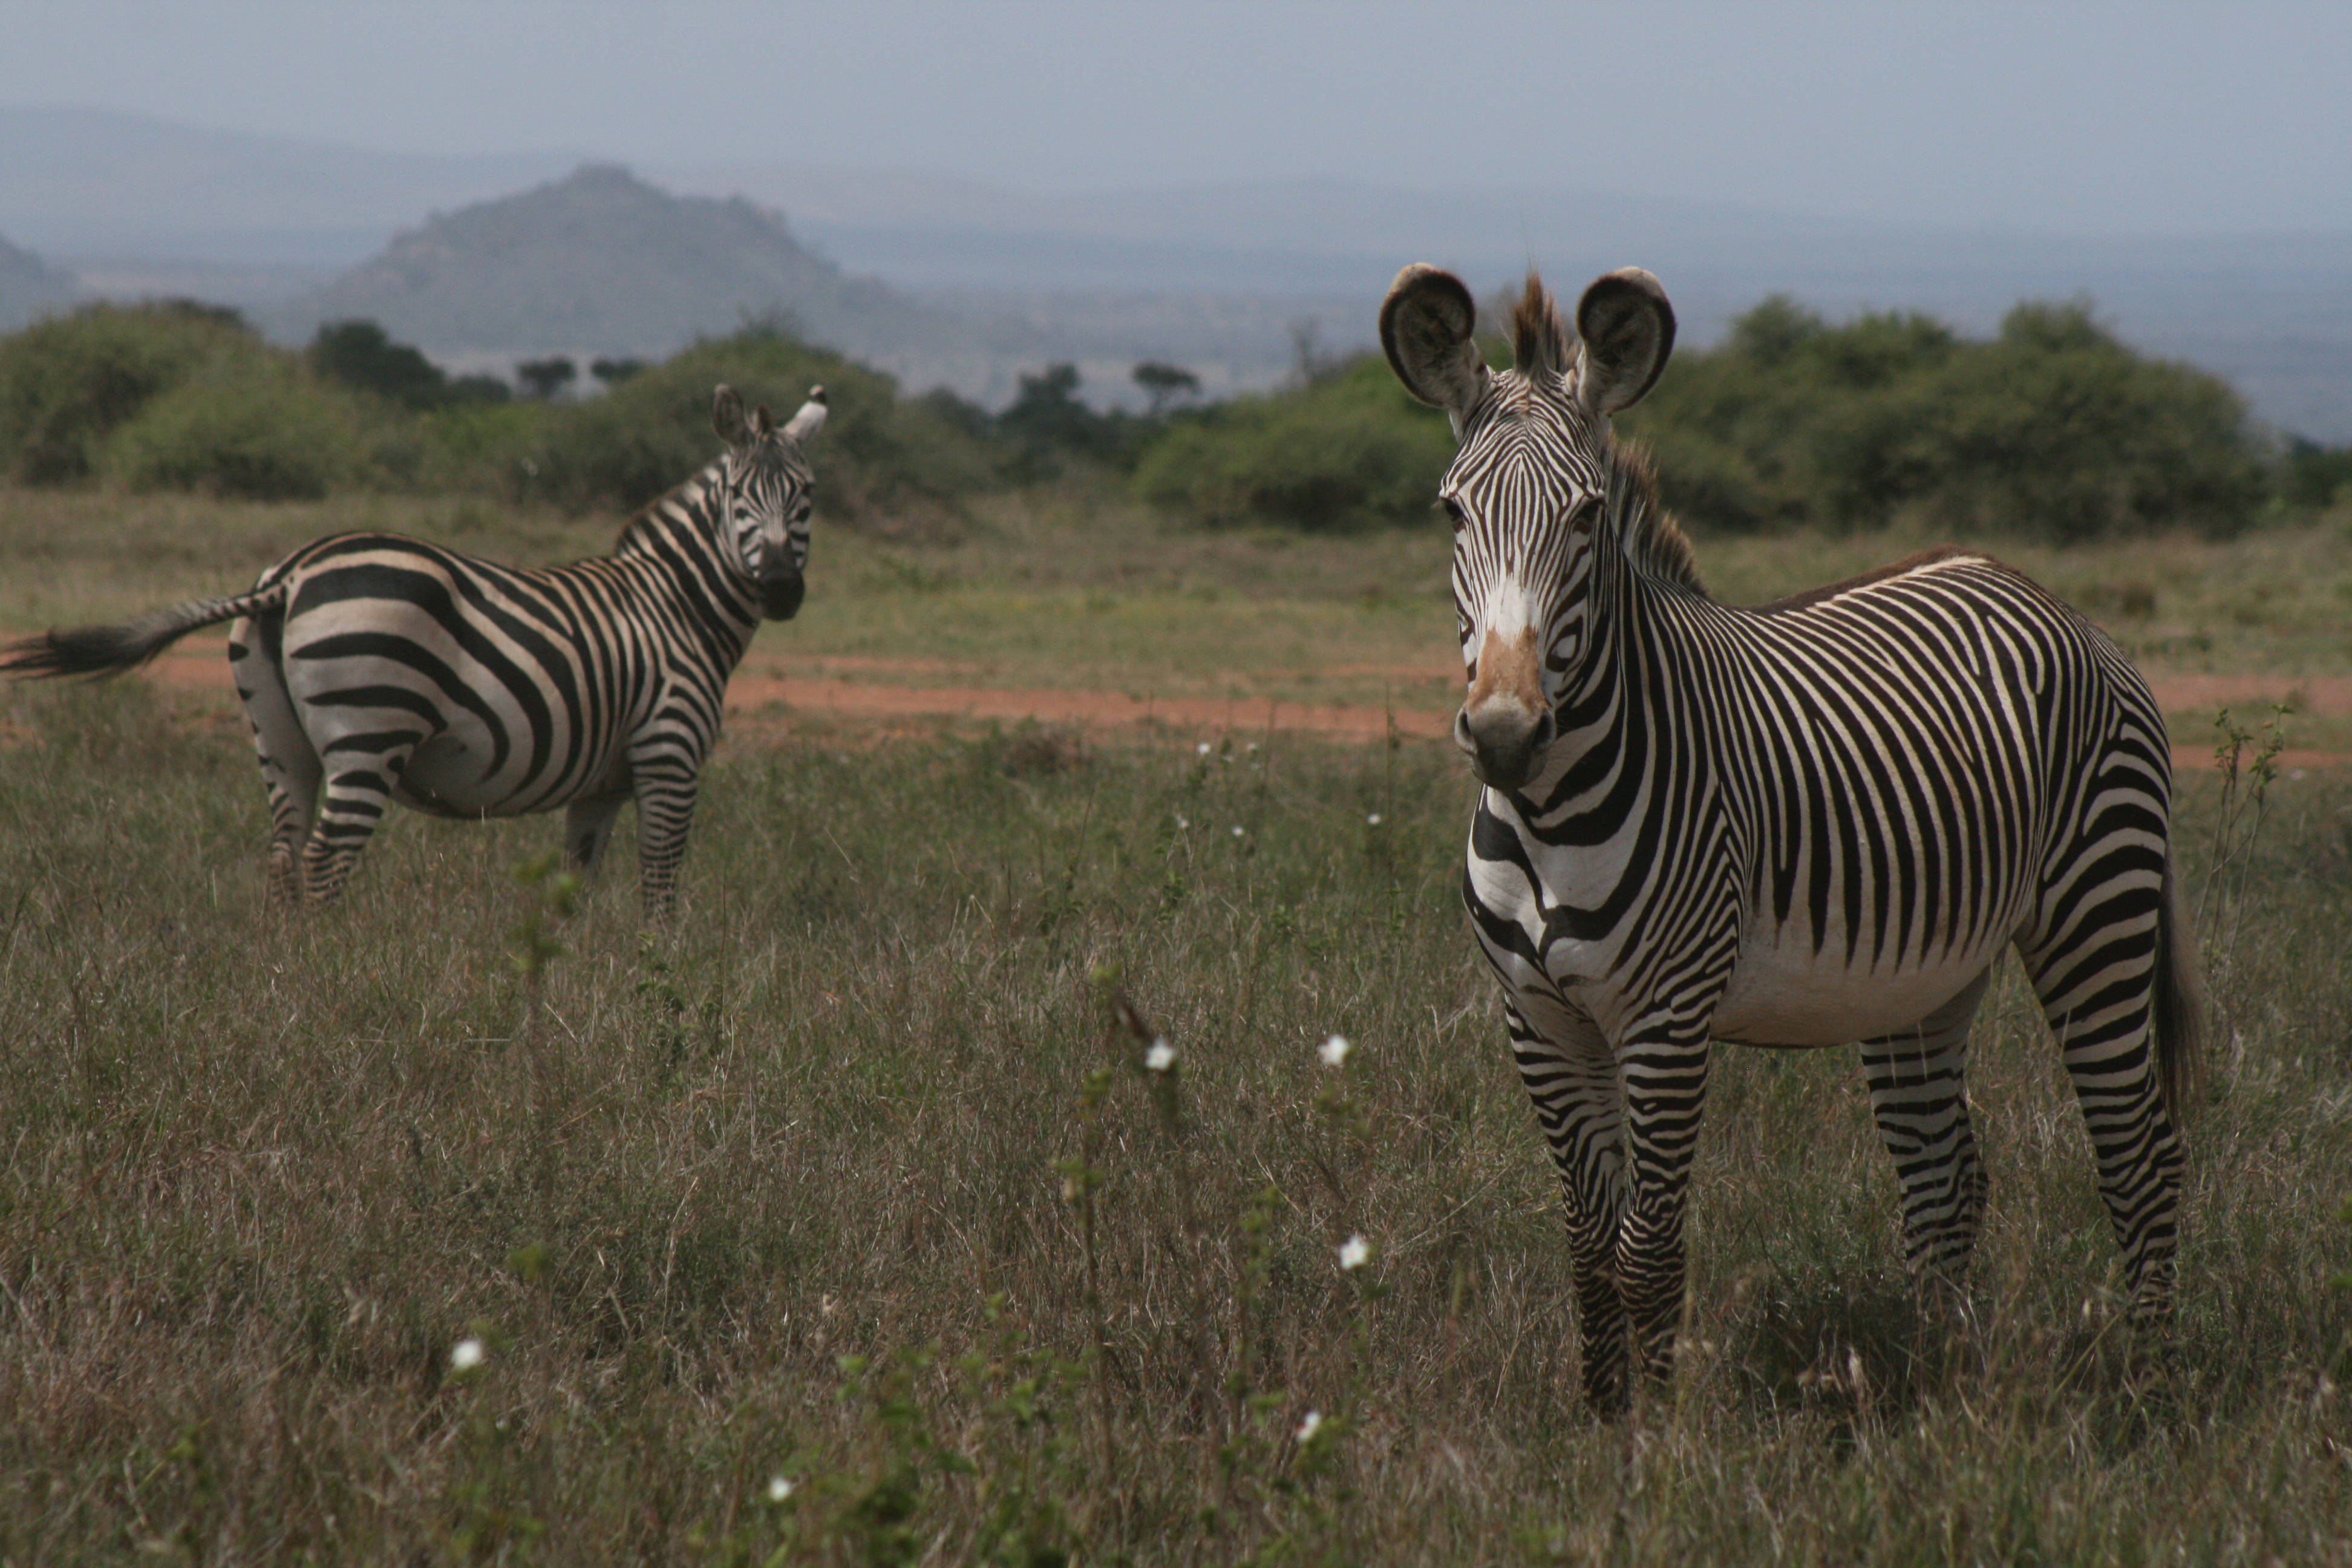 Different Stripes for Different Species